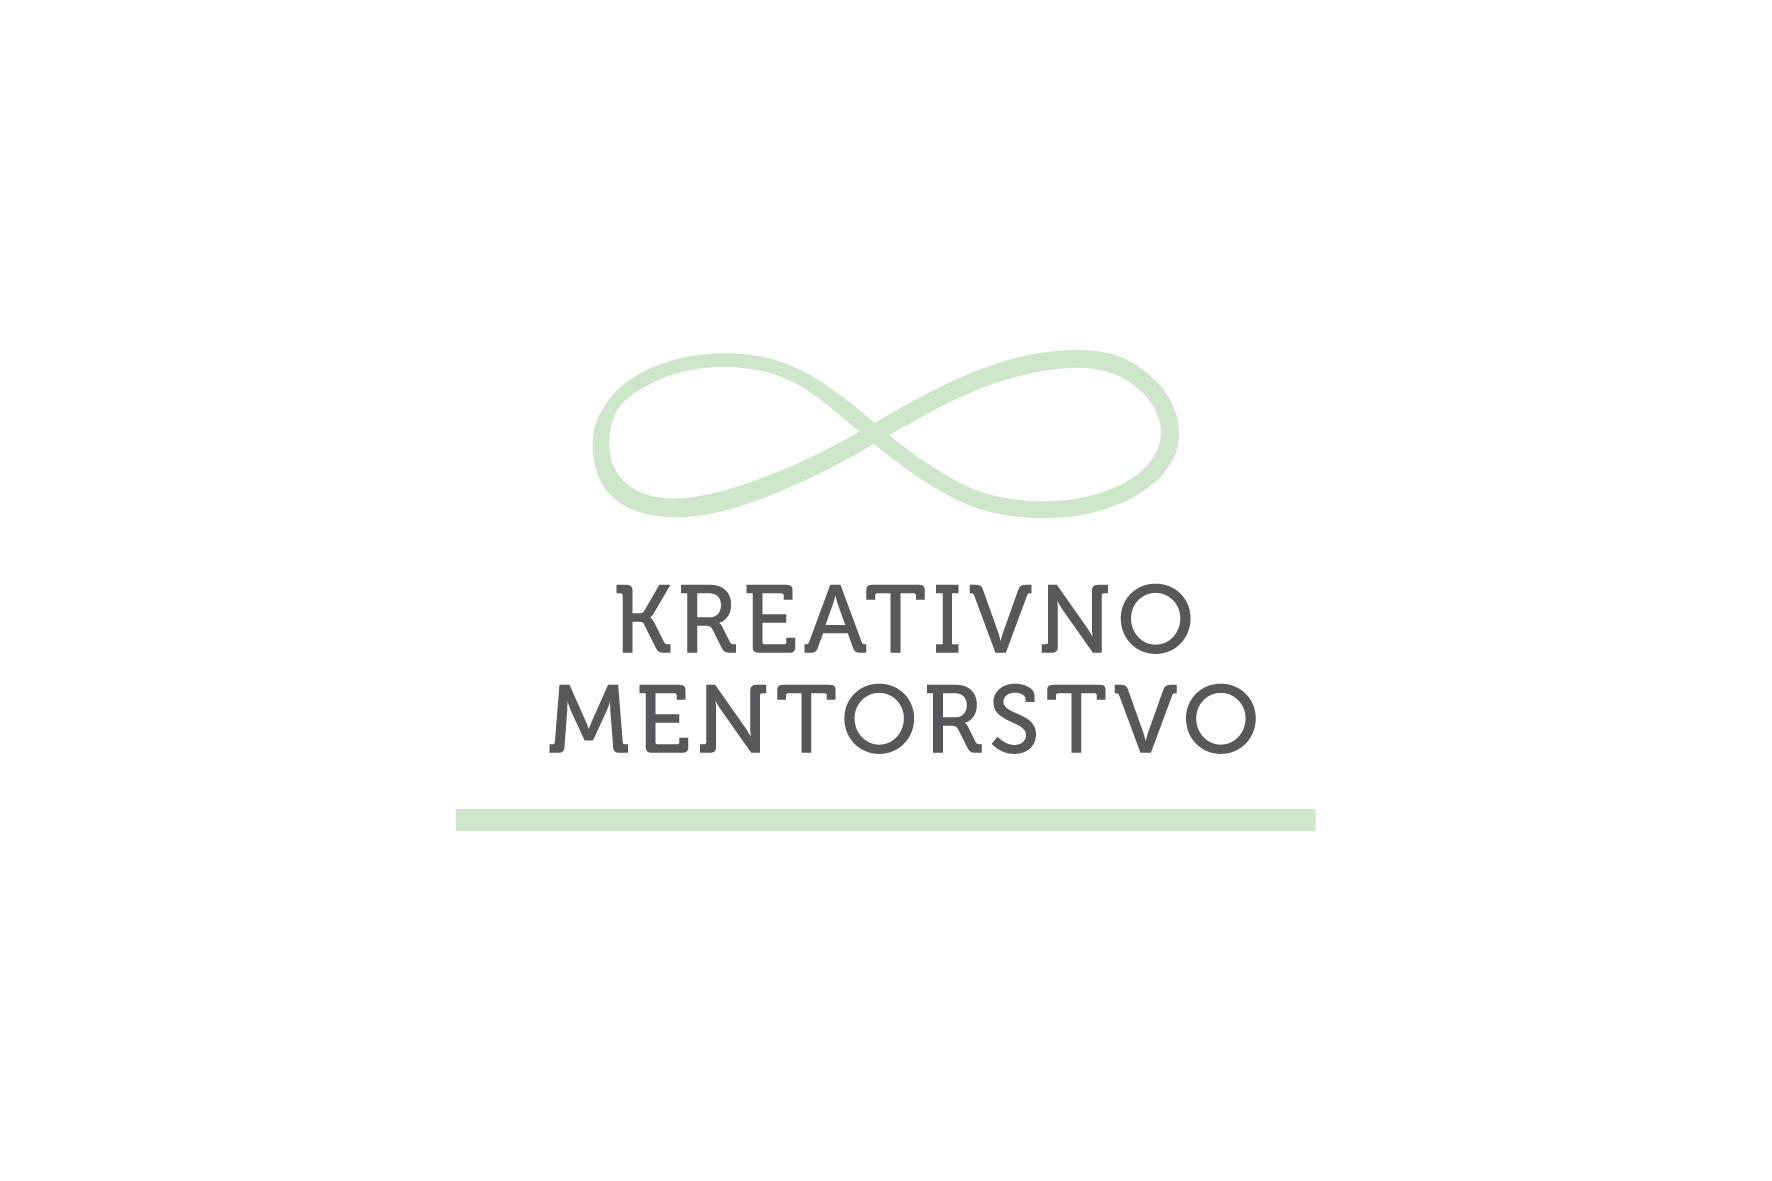 http://www.kreativnomentorstvo.com/wp-content/uploads/2020/12/KM_Logo_ENG-02.png